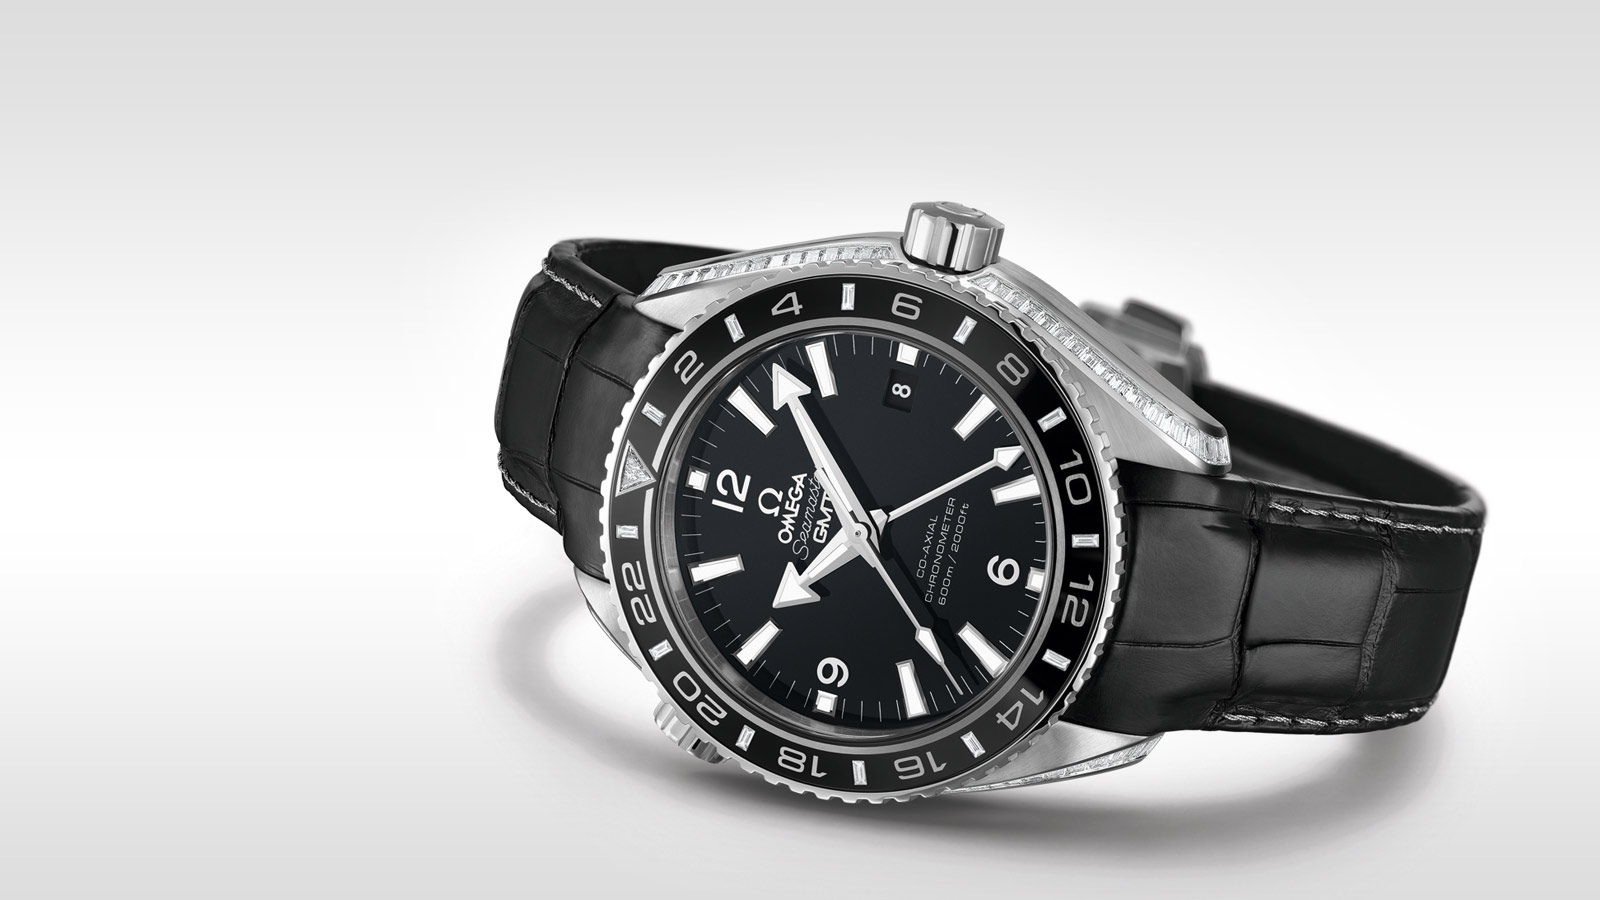 Seamaster Planet Ocean 600M Planet Ocean 600M Omega Co‑Axial GMT 43,5 mm - 232.98.44.22.01.001 - Vista 1